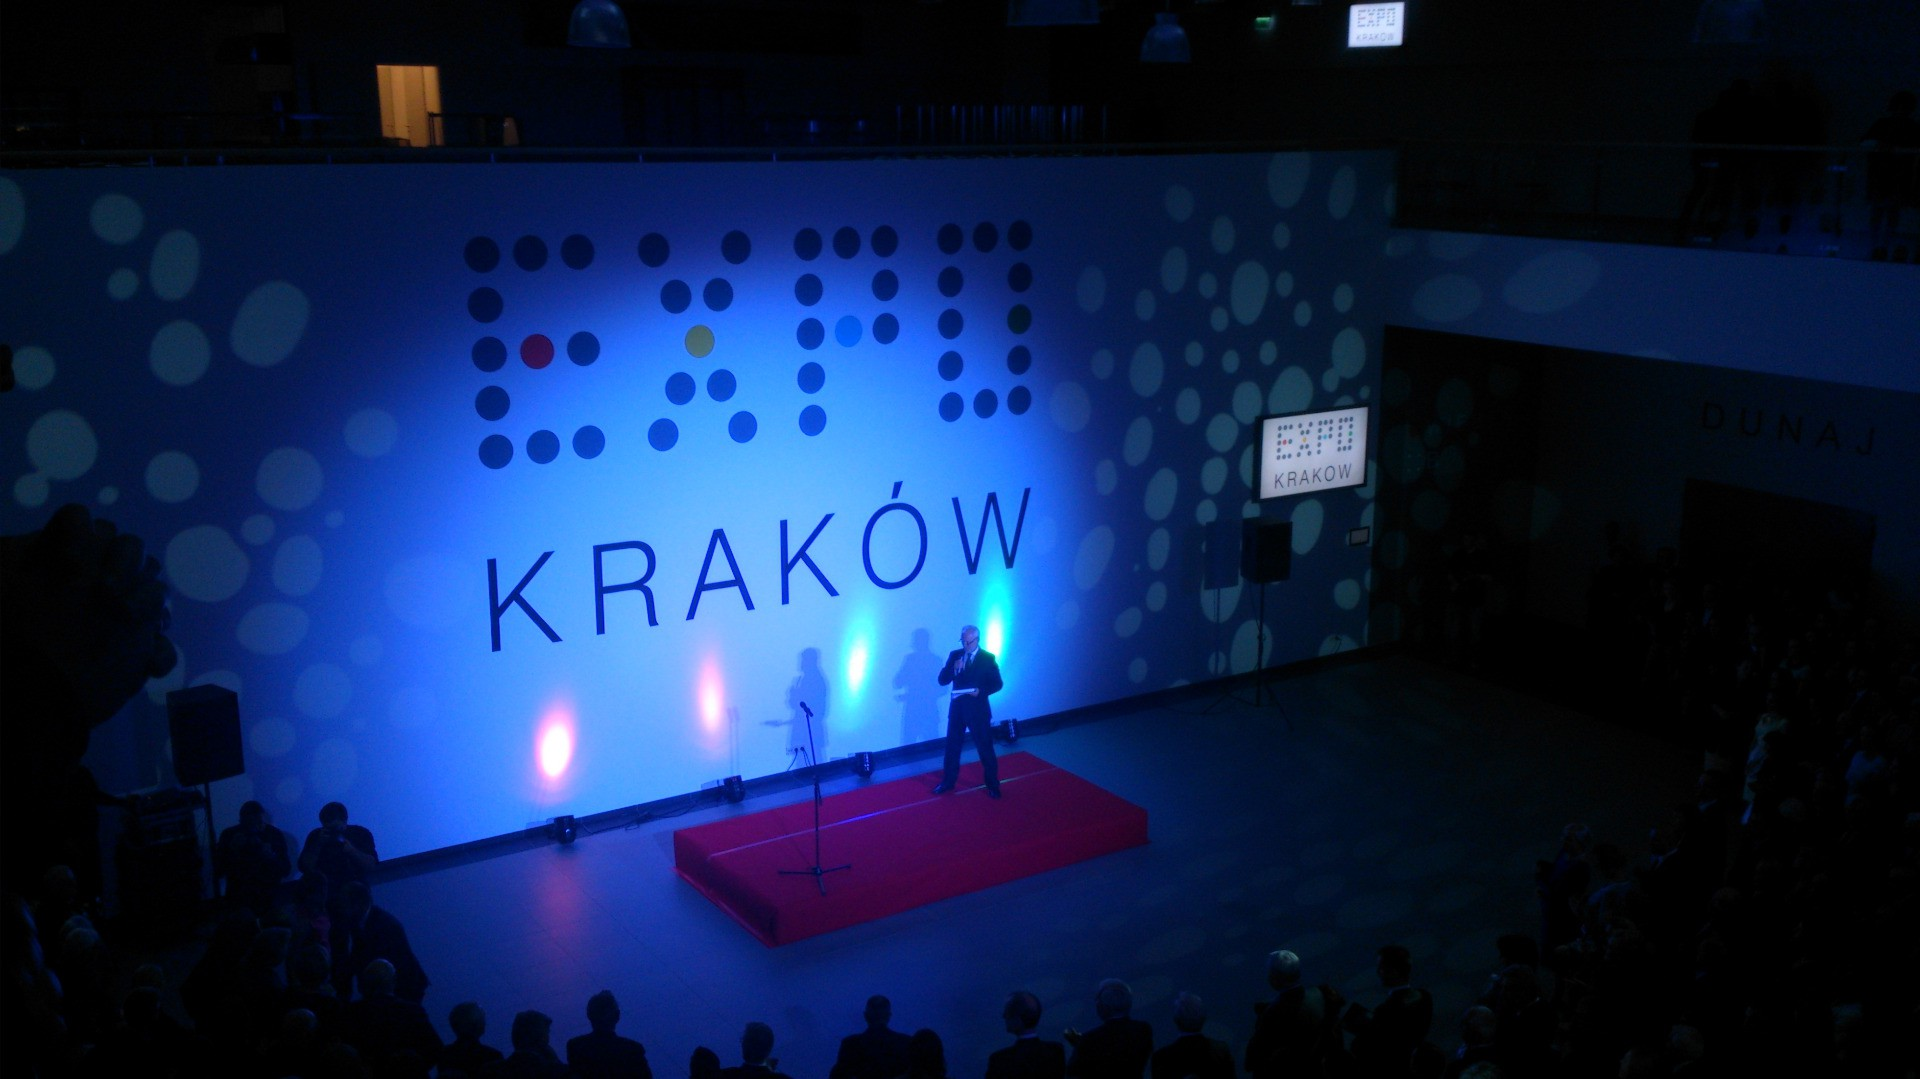 Official opening of EXPO Krakow